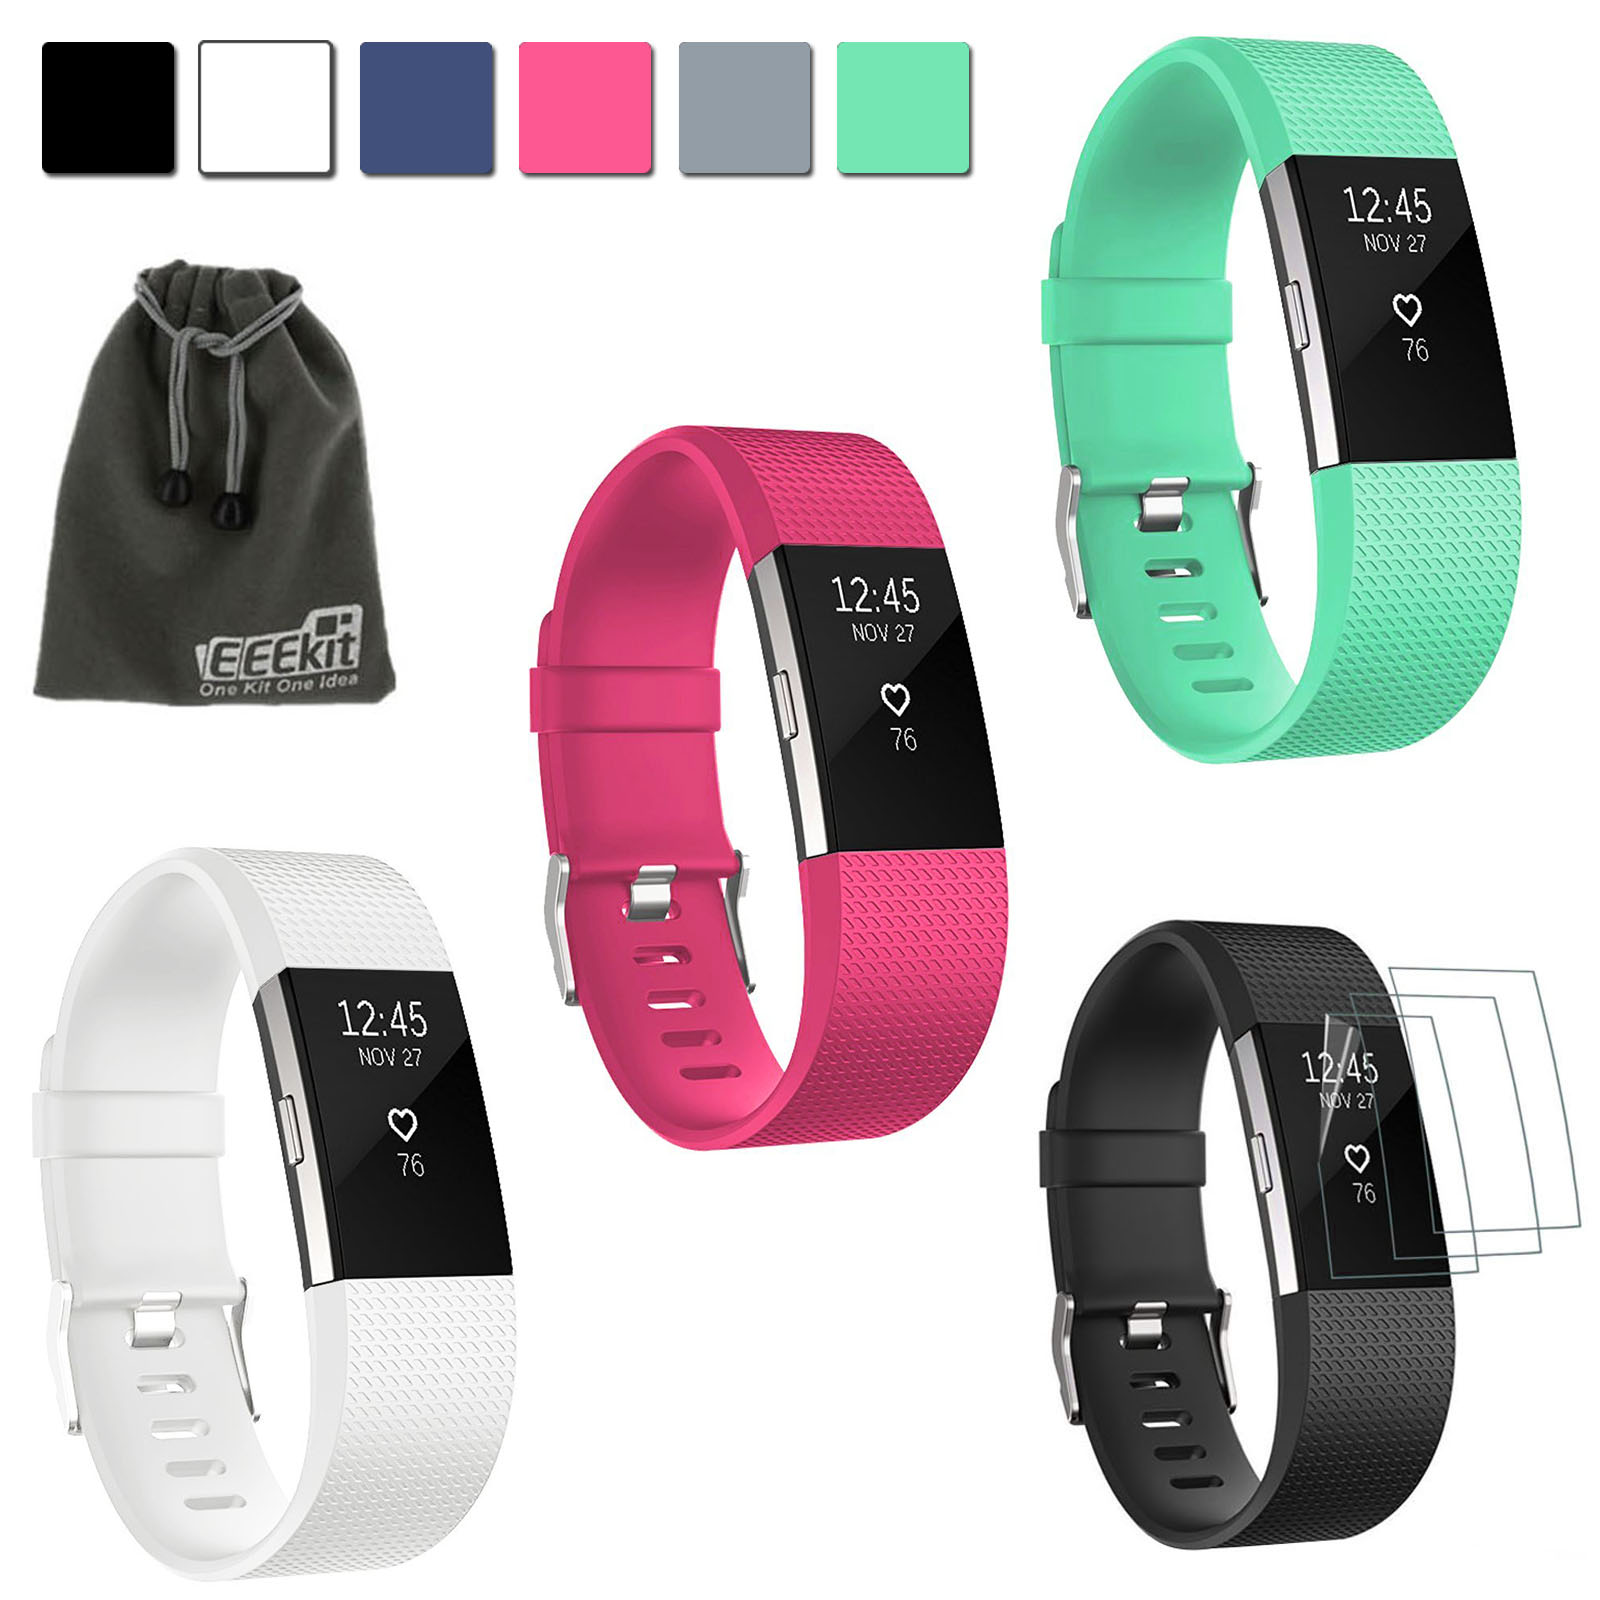 EEEKit 4in1Kit for Fitbit Charge 2, 3 Pcs Silicone Sport Replacement Straps Accessories Wrist Bands+3 Pcs Screen Protectors